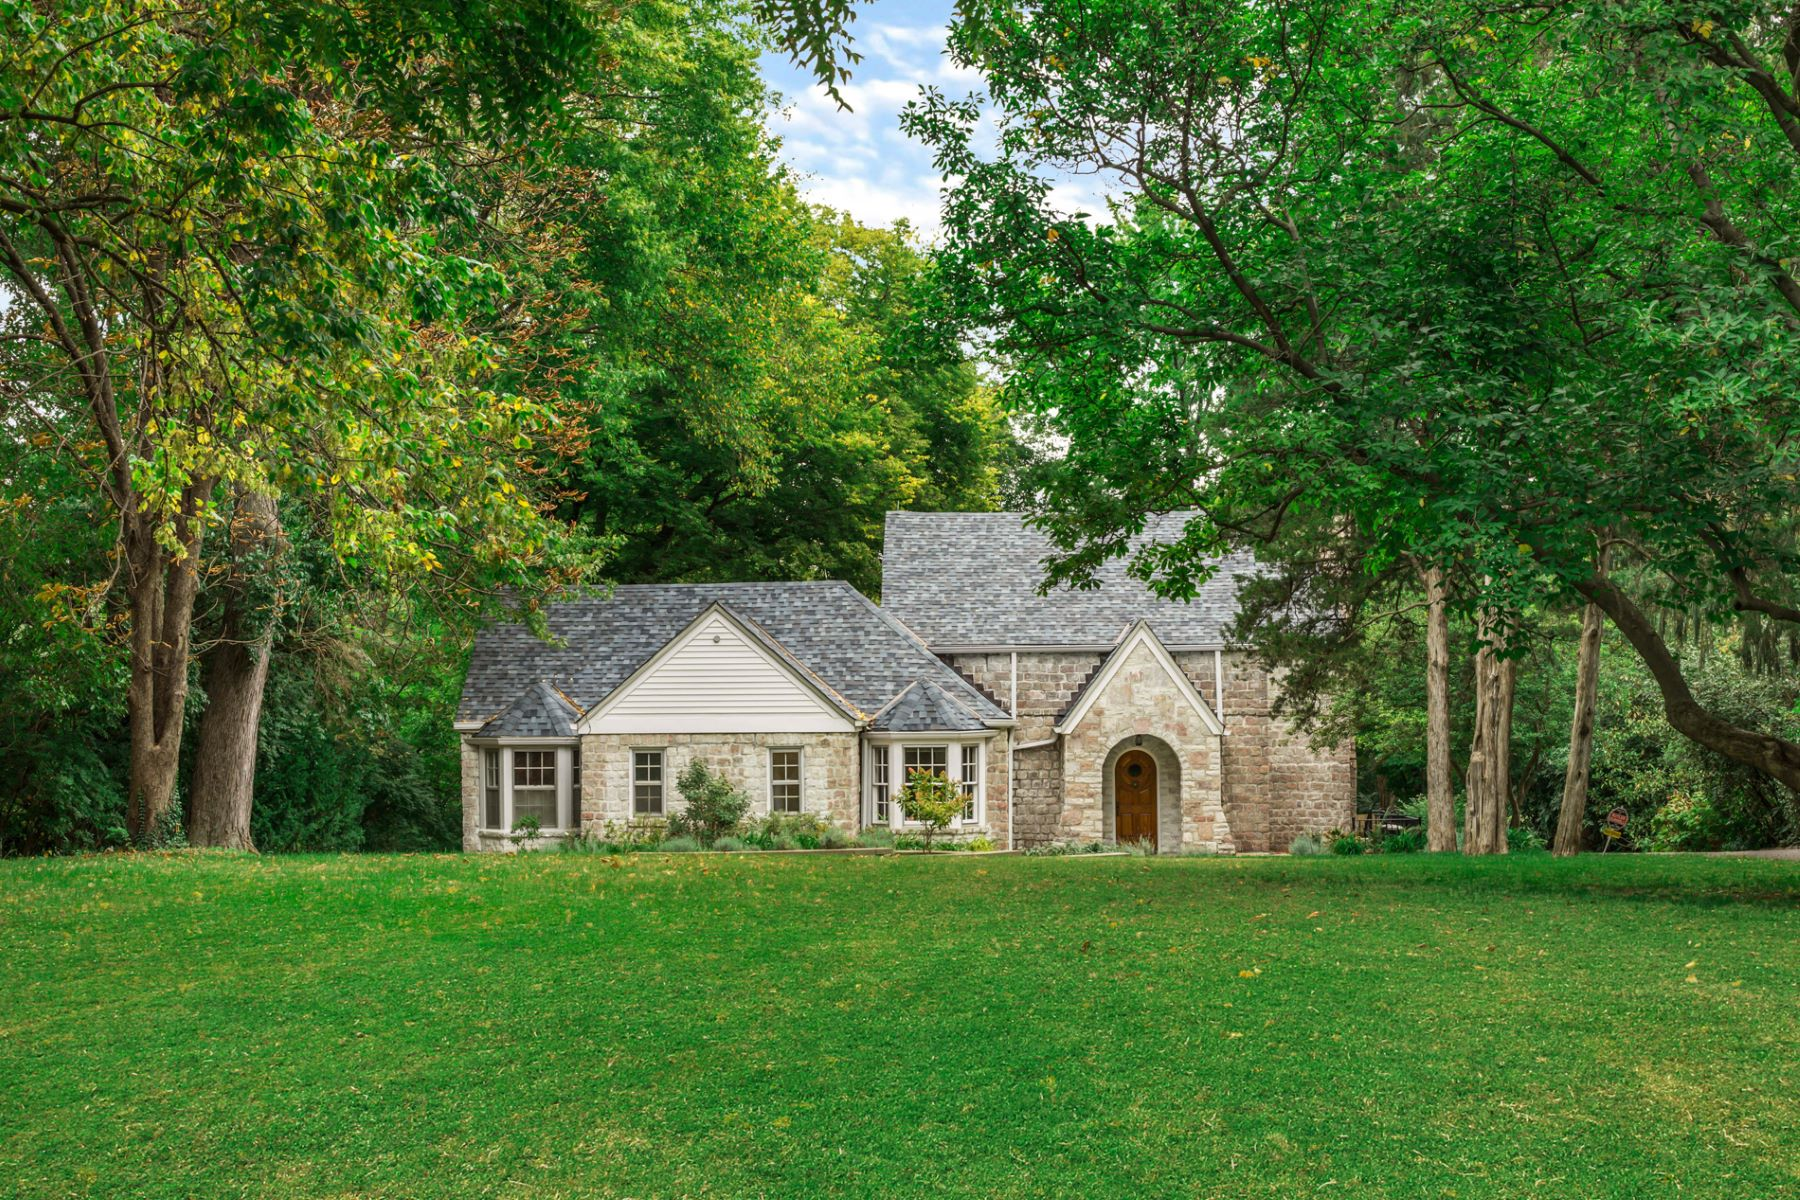 Single Family Homes for Sale at Beautiful Stone House in Ladue 9117 Clayton Road Ladue, Missouri 63124 United States